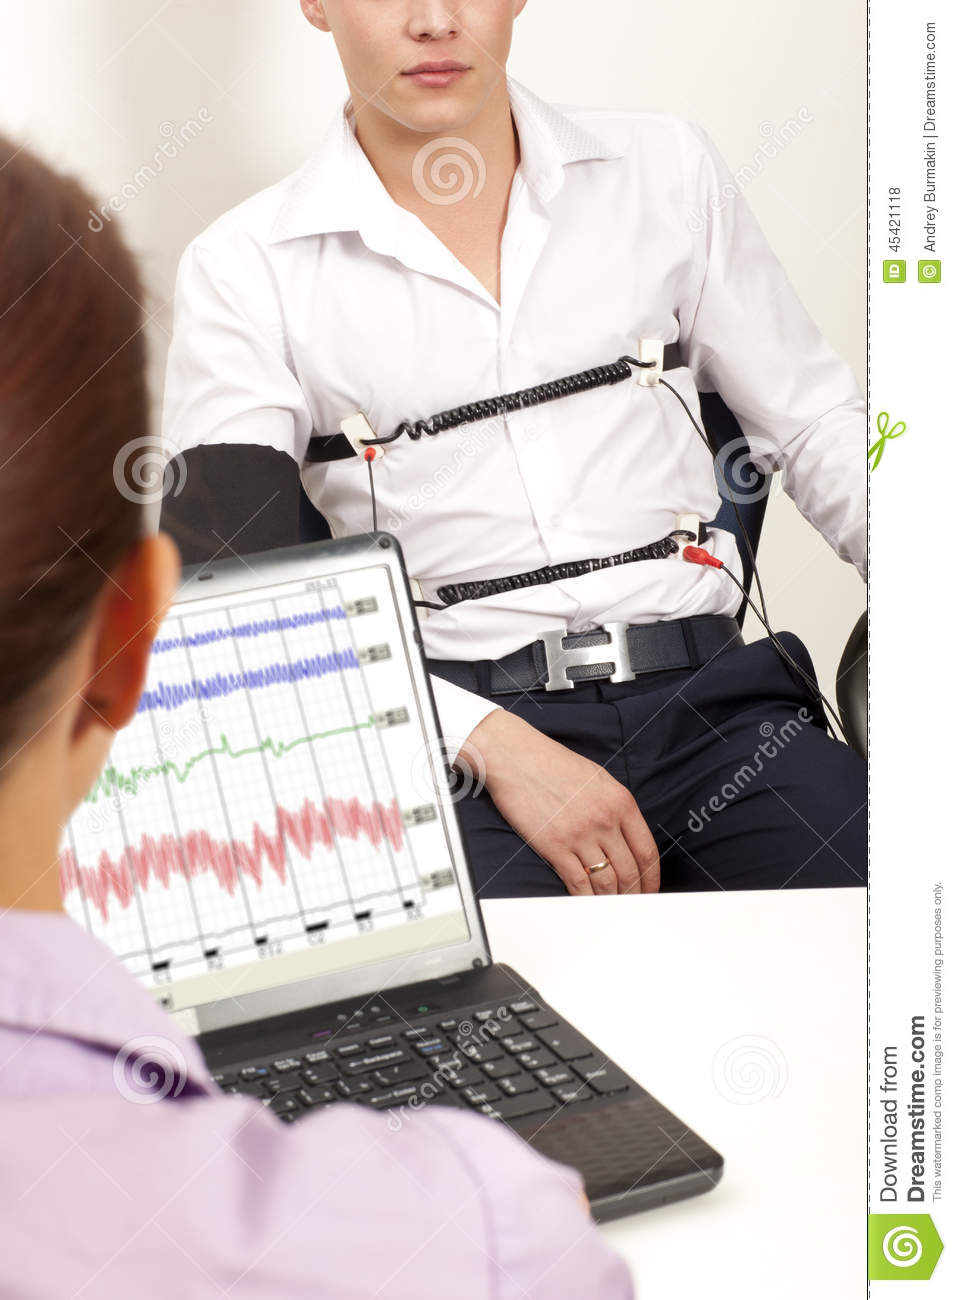 Lie Detector stock photo  Image of consequence, adult - 45421118